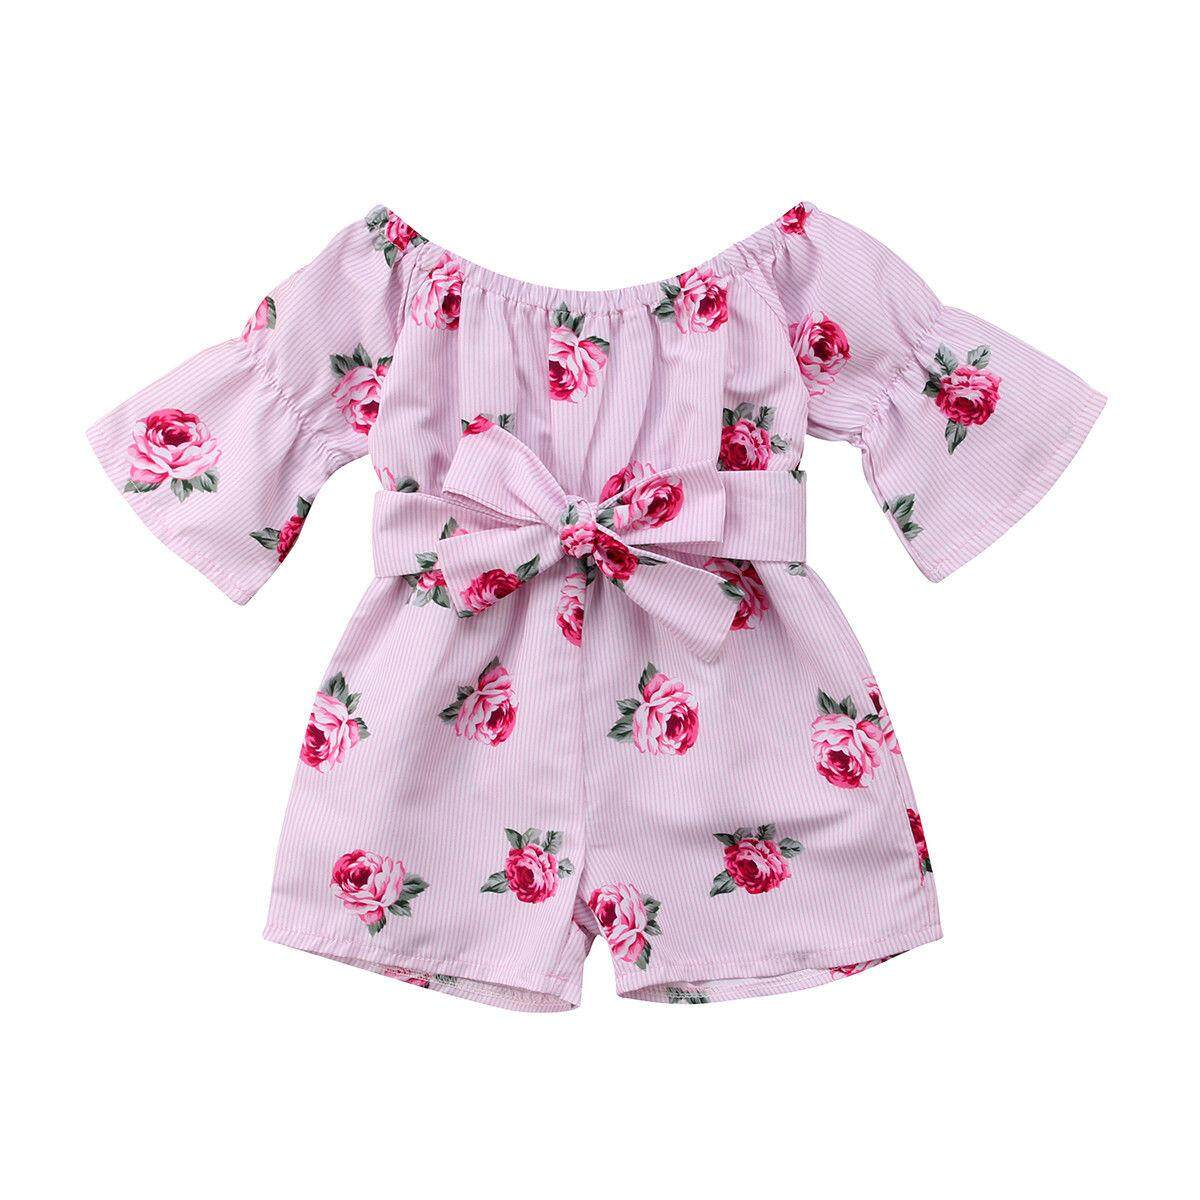 05846477b Baby Girls Clothing - Dresses - Buy Baby Girls Clothing - Dresses at ...